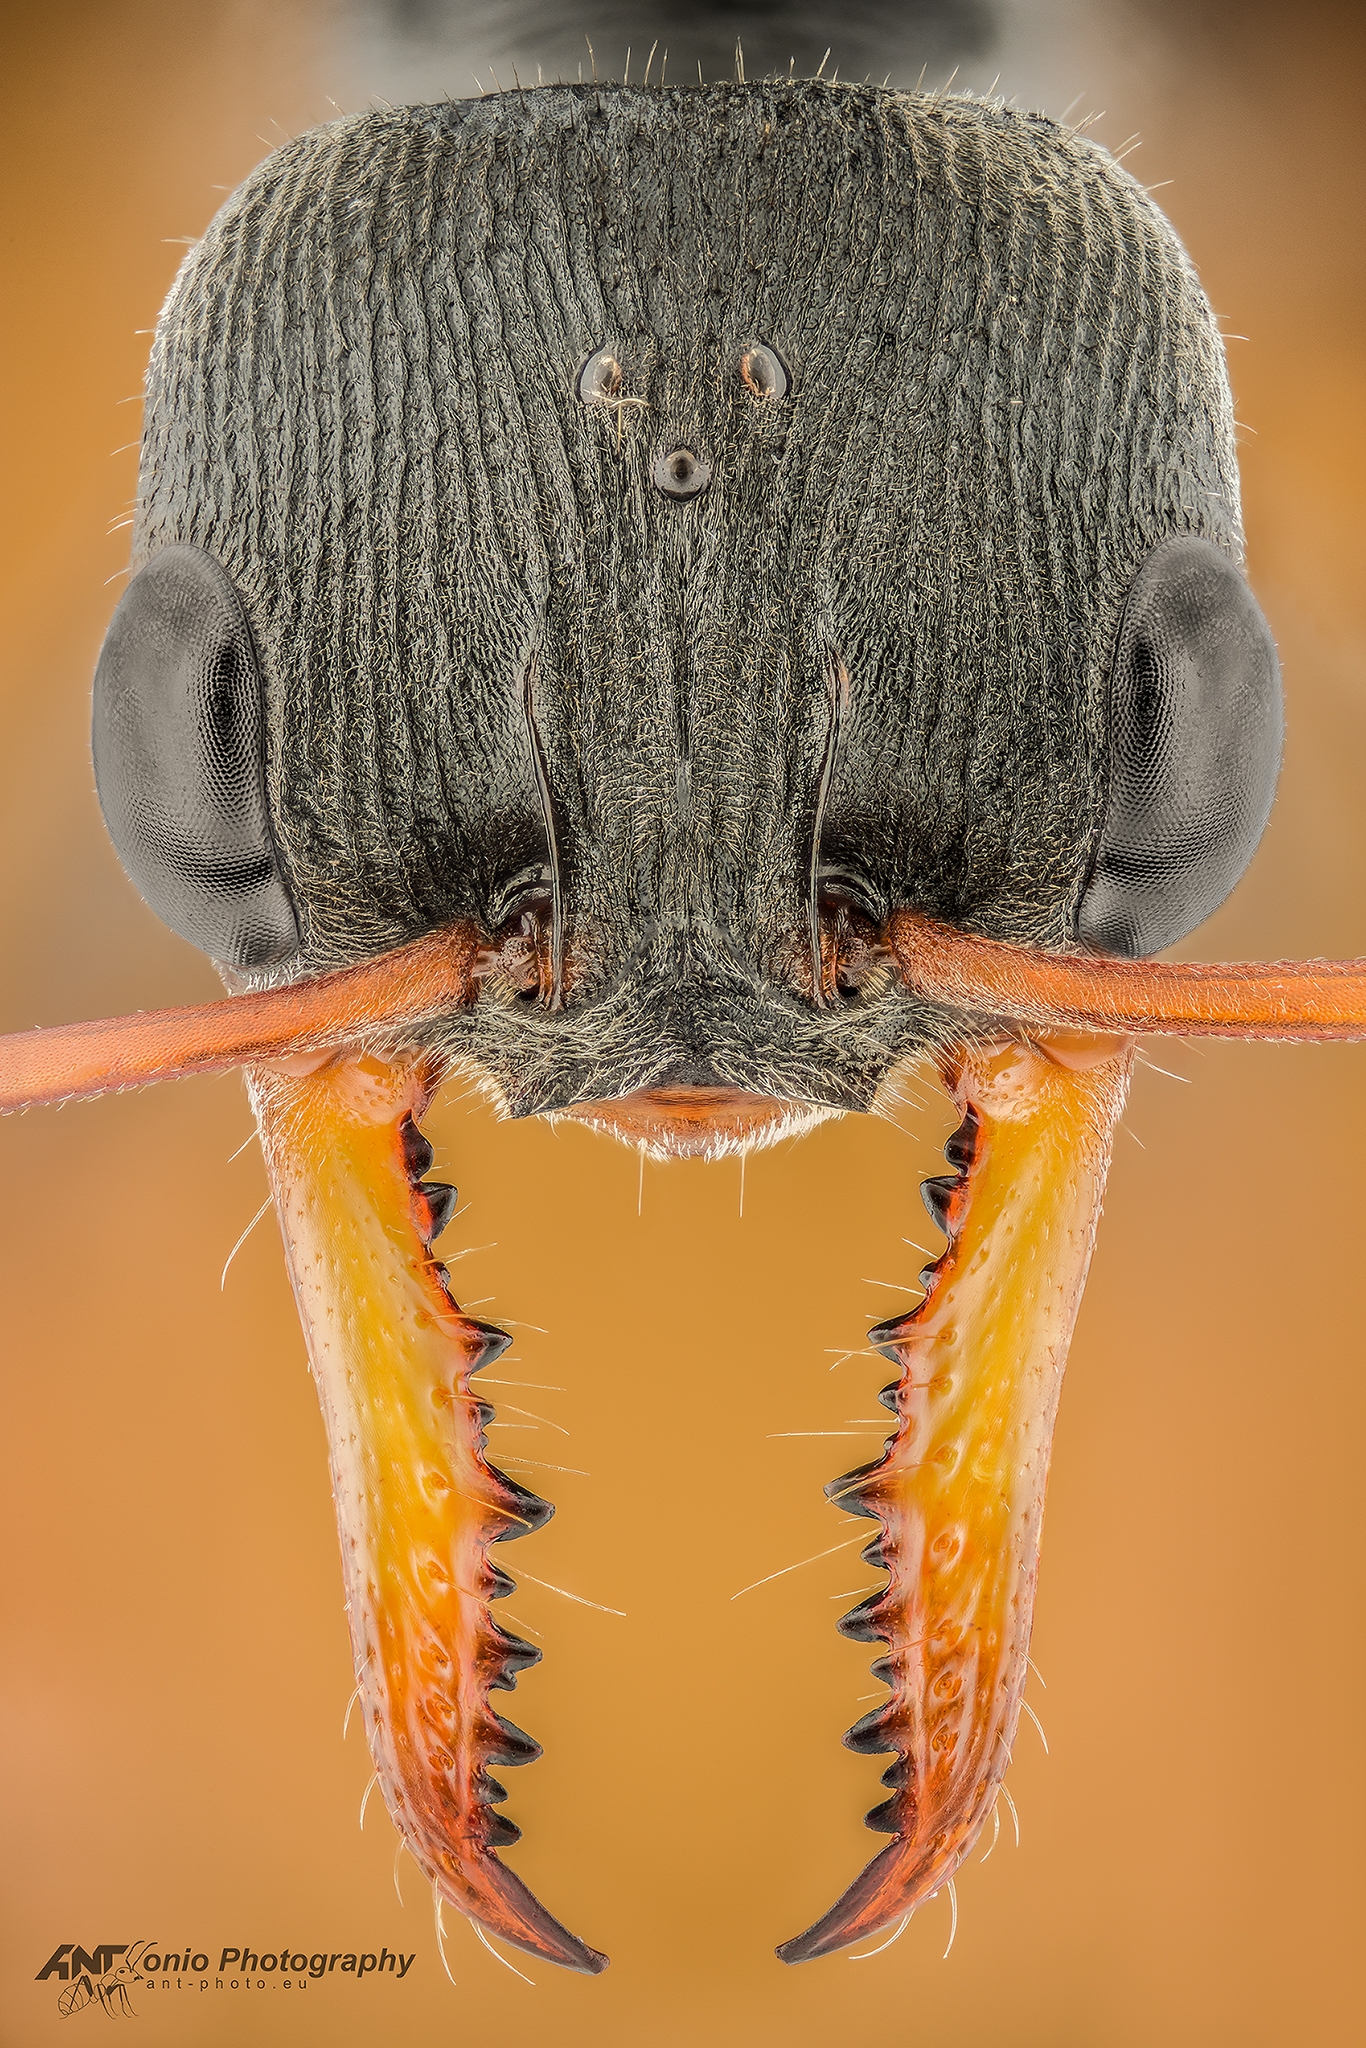 Ant Myrmecia pilosula queen head